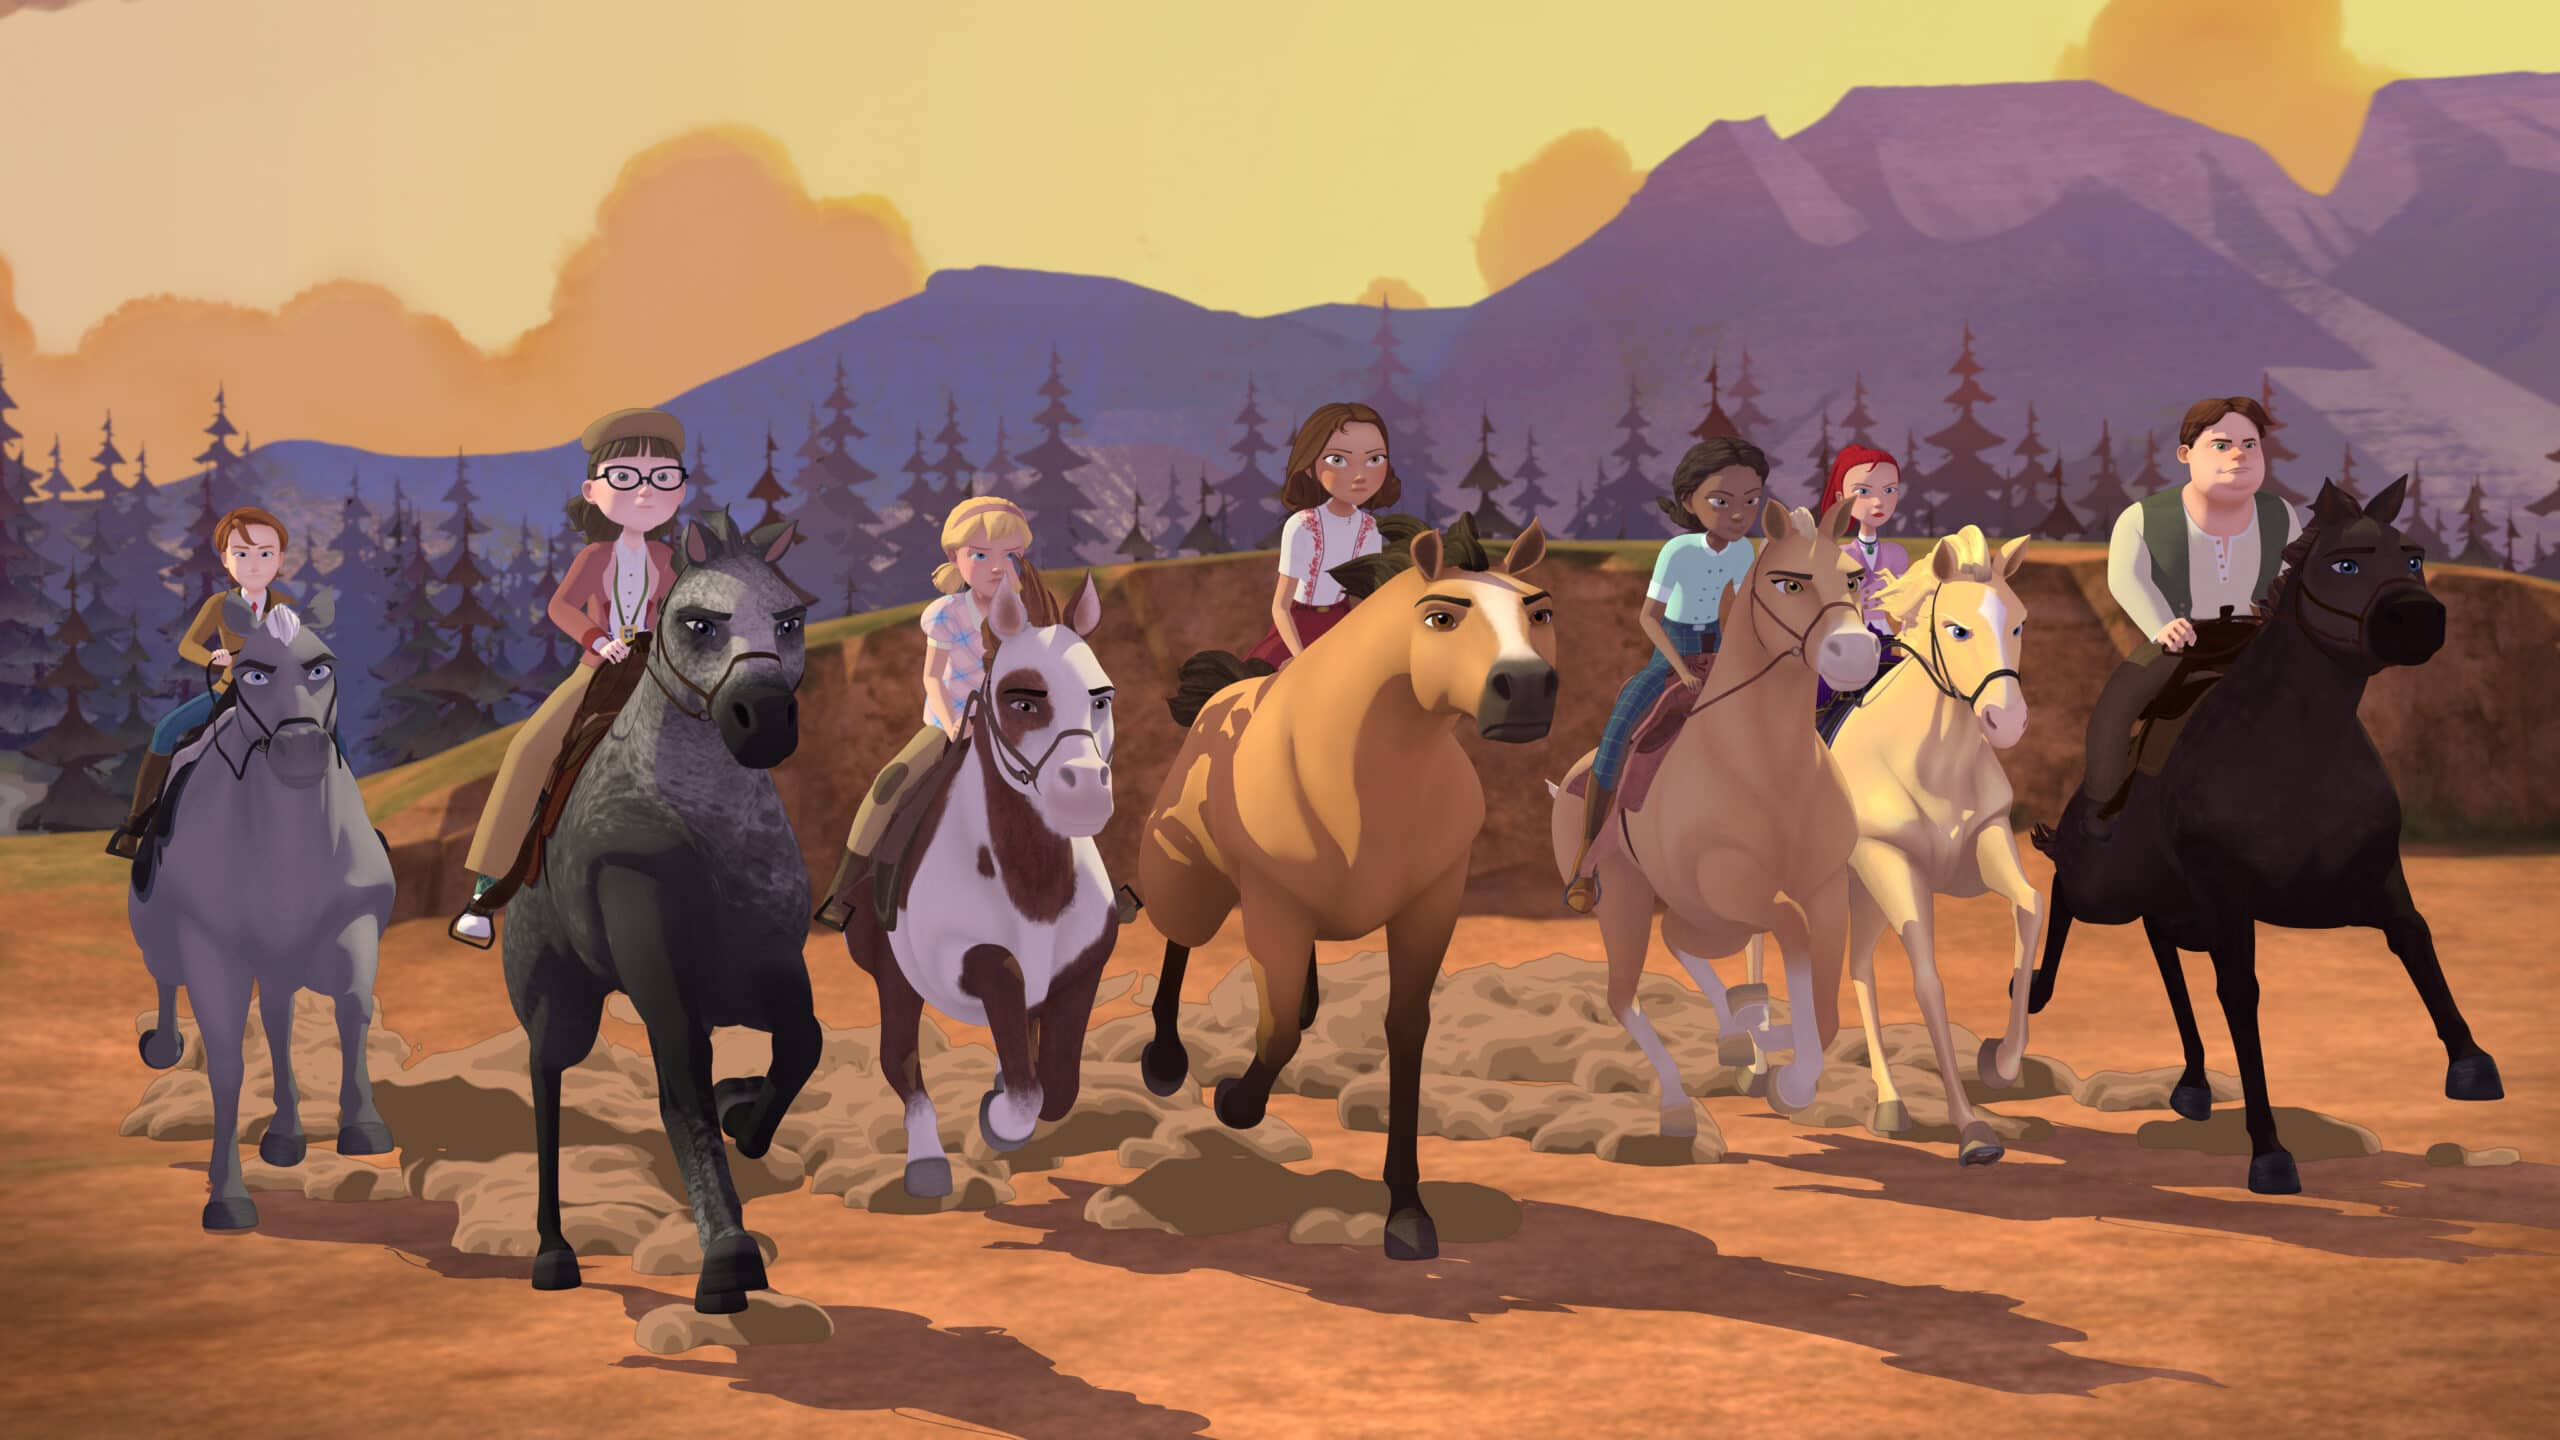 Spirit Riding Academy Part 2 Group. Inspired by the 2002 Oscar-nominated film ?Spirit: Stallion of the Cimarron,DreamWorks Spirit Riding Free?: Riding Academy Part 2takes place during their final term as Foals, Lucky, Pru & Abigail have finally adjusted to life at Palomino Bluffs Riding Academy when Mariciela announces that she and Mystery will be joining them!